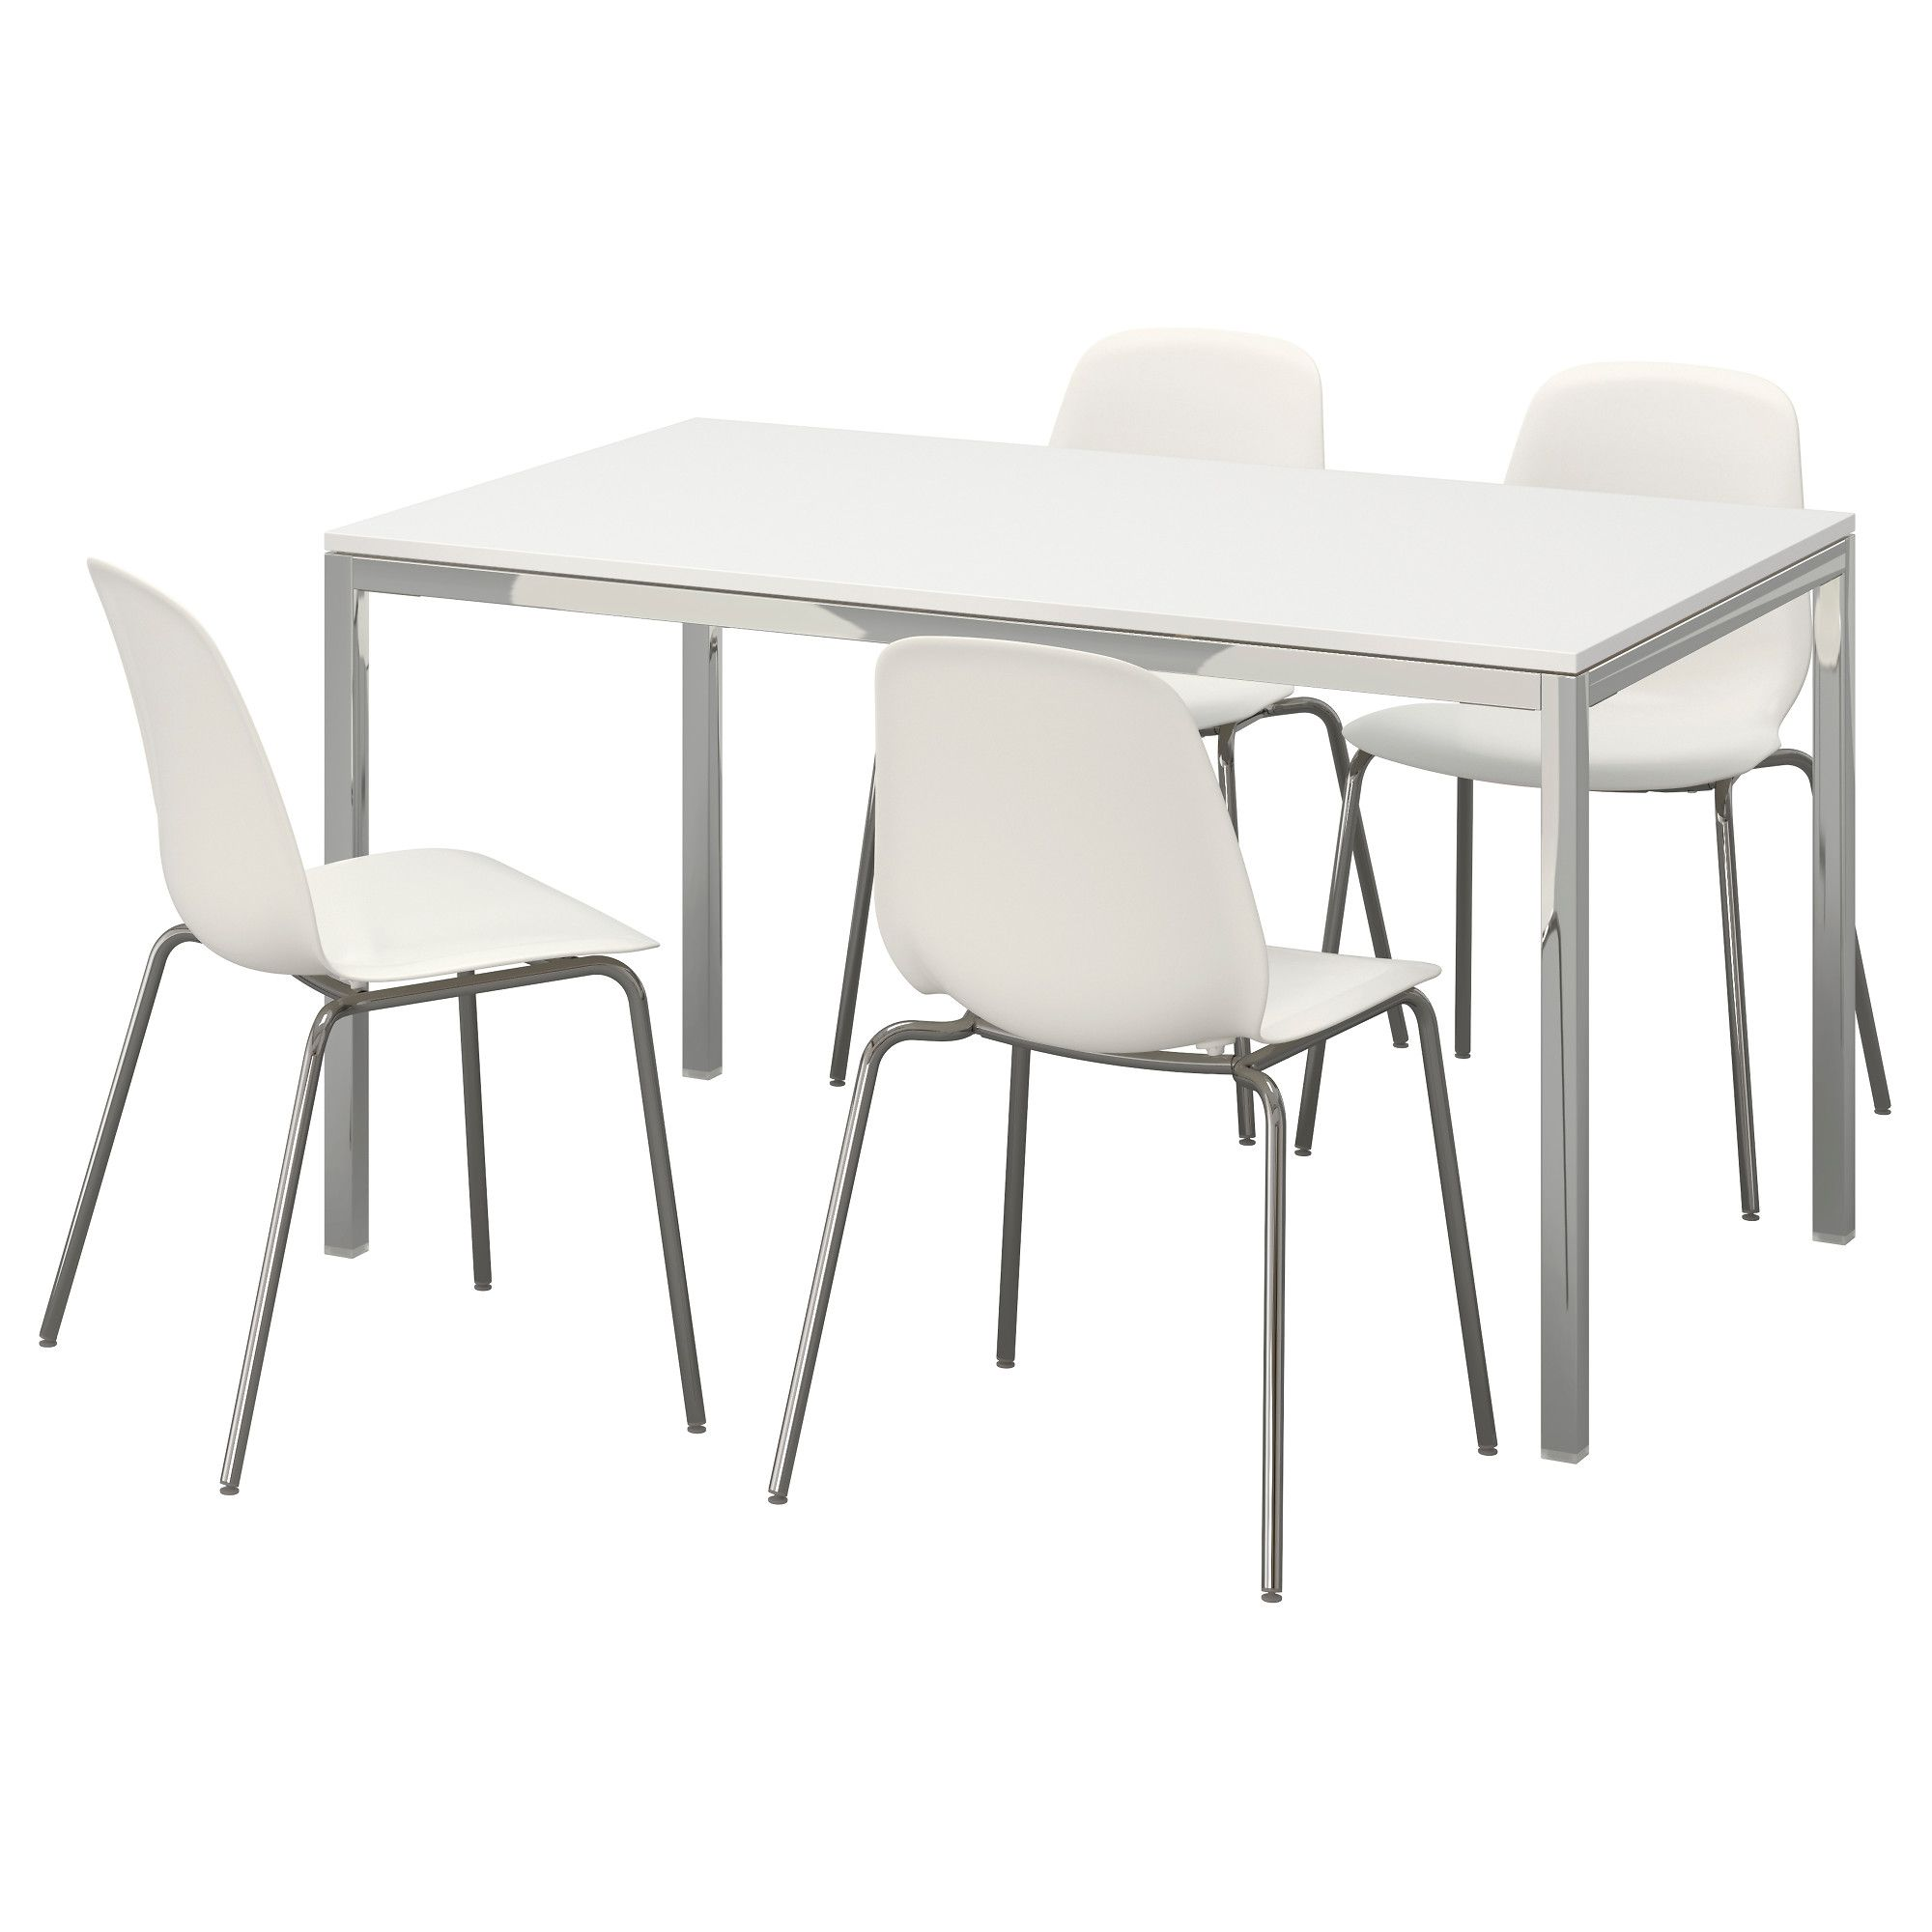 TORSBY / LEIFARNE Table and 4 chairs, highgloss white